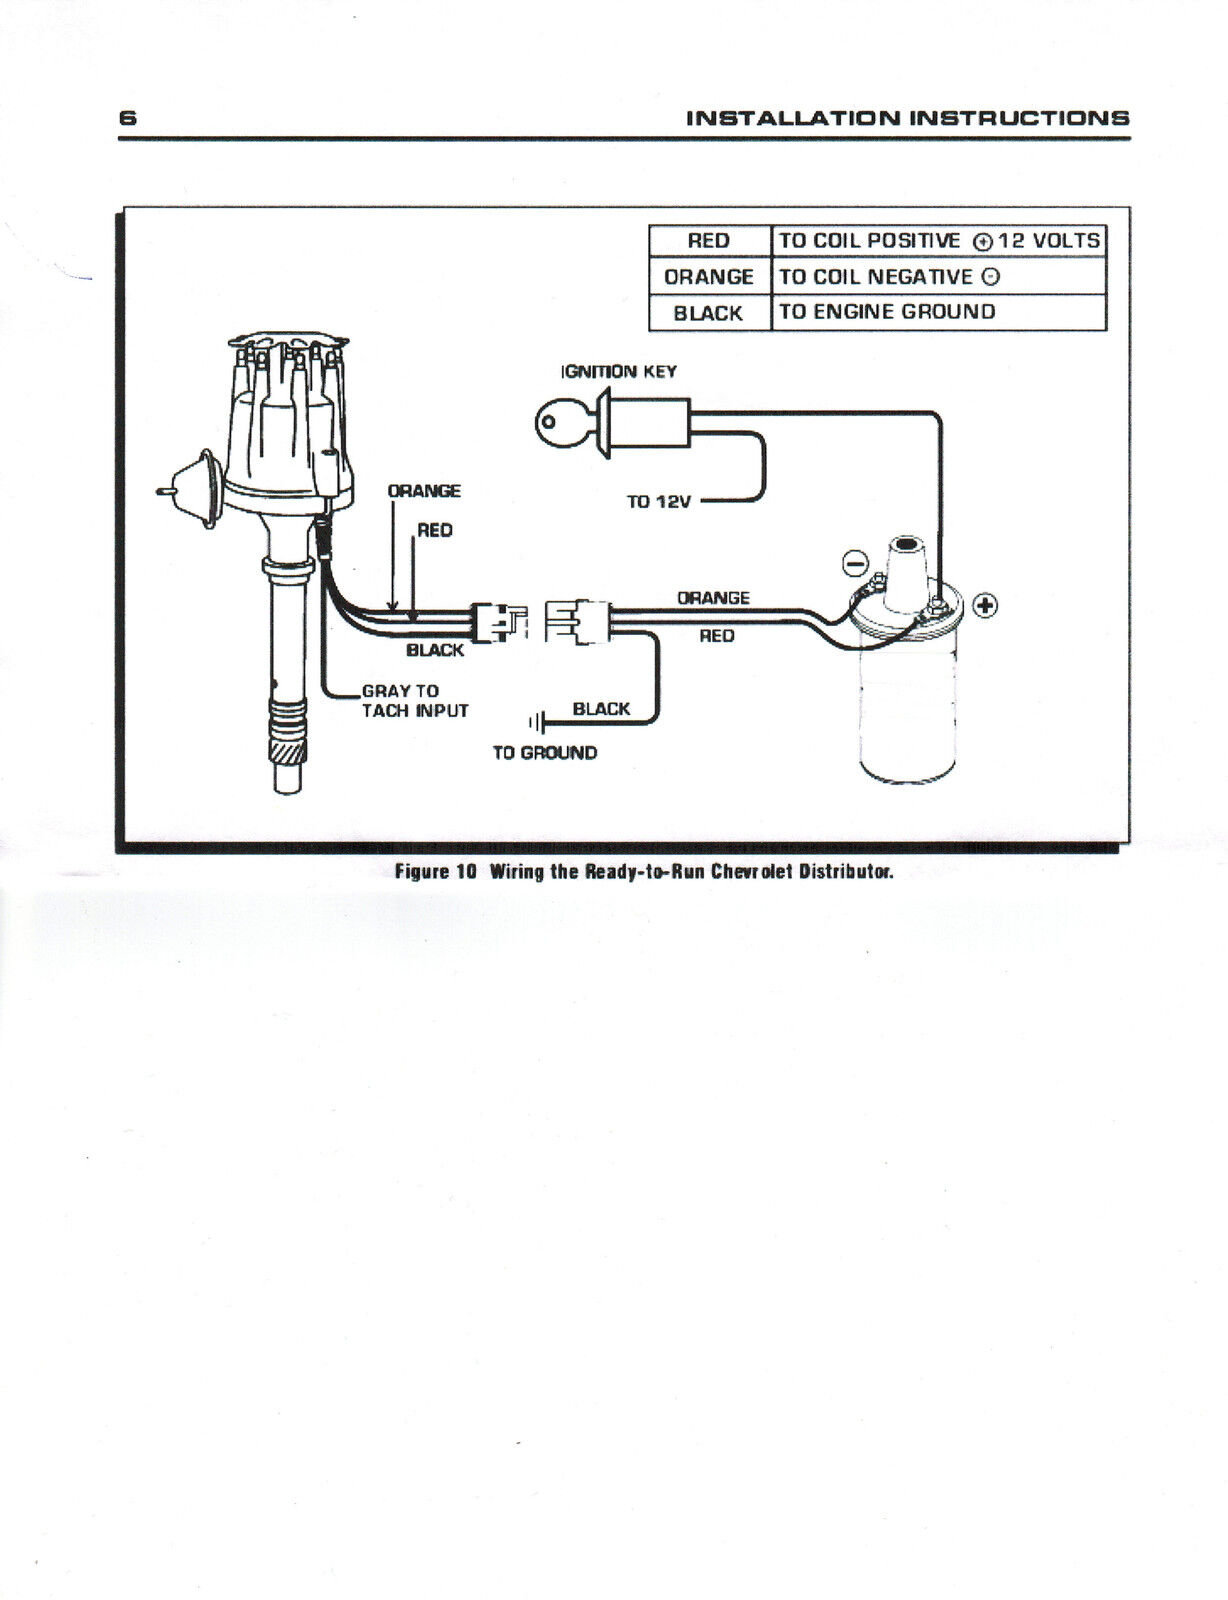 small cap FORD INLINE 6 Cylinder 170 200 250 PRO _57?resize\\\=665%2C866\\\&ssl\\\=1 pro comp 8000 distributor wiring diagram wiring diagrams pro comp distributor wiring diagram at bakdesigns.co